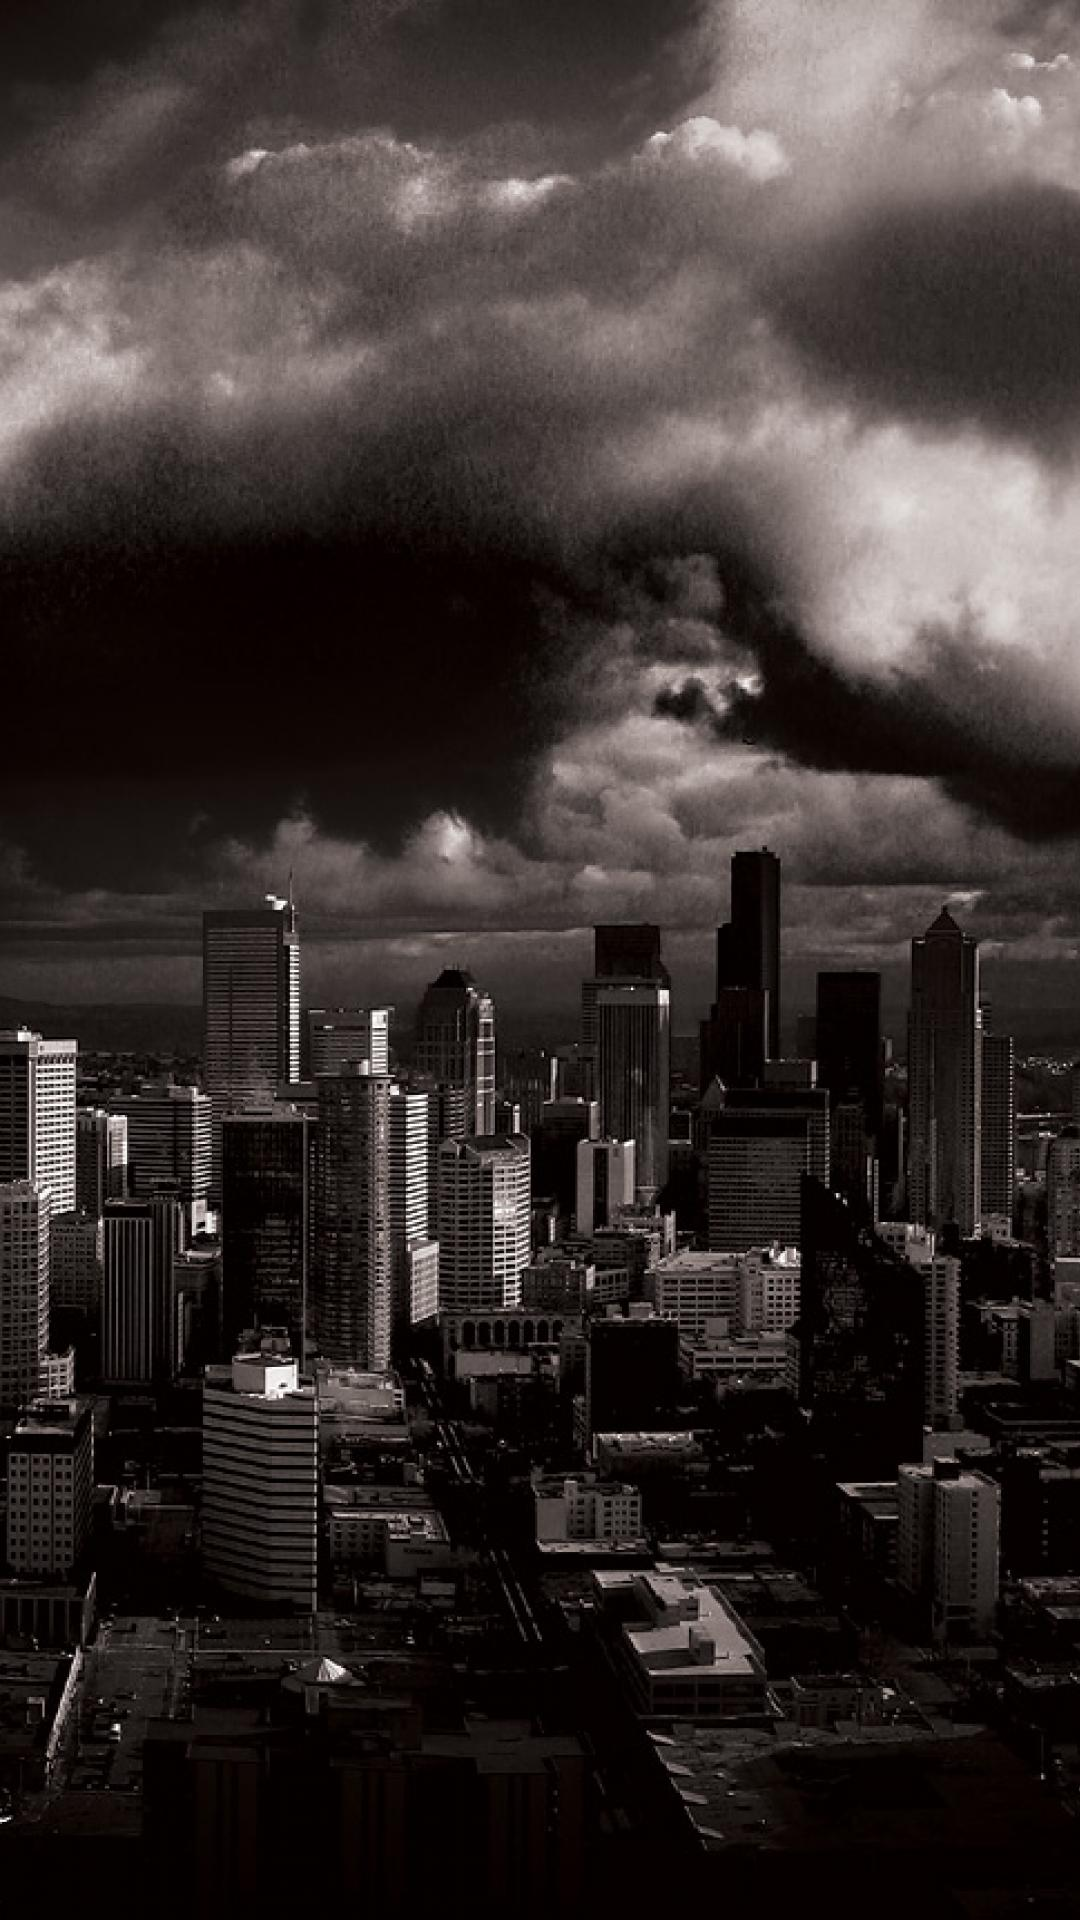 stormy seattle grayscale dual monitor hd quality Csd 1080x1920